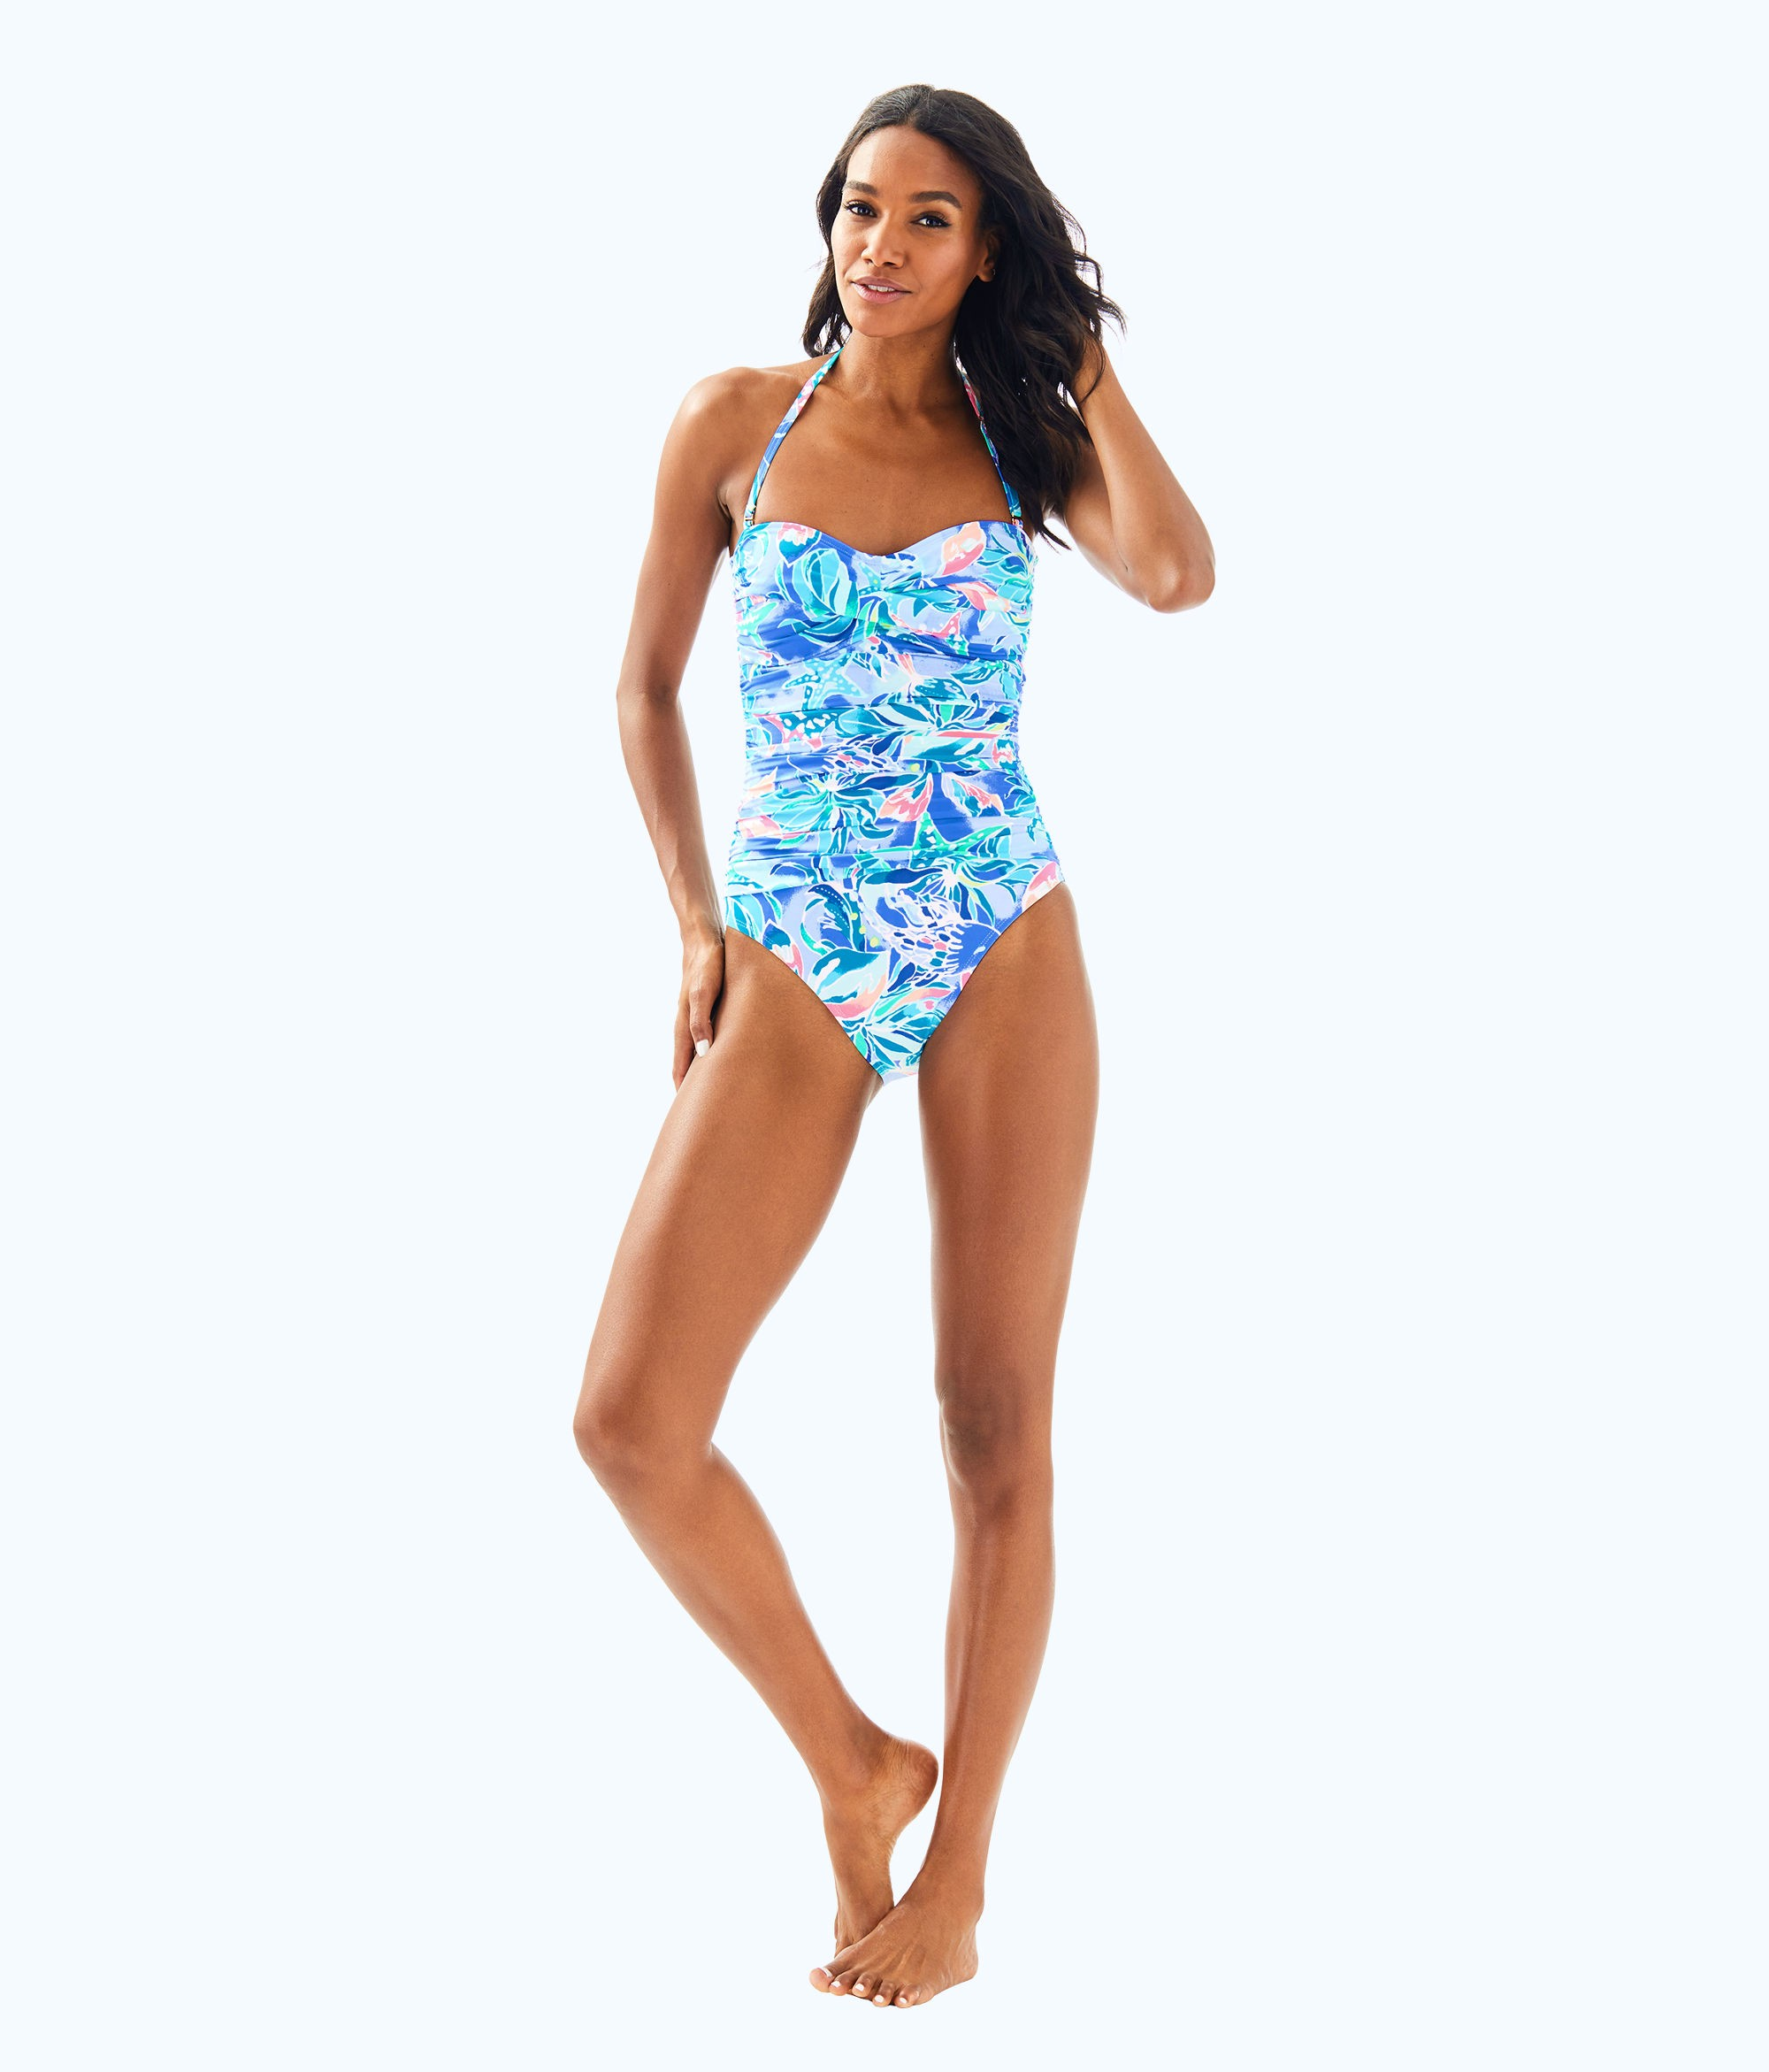 73226bd325e49 Lilly Pulitzer Flamenco One Piece Swimsuit - 12 | Products ...